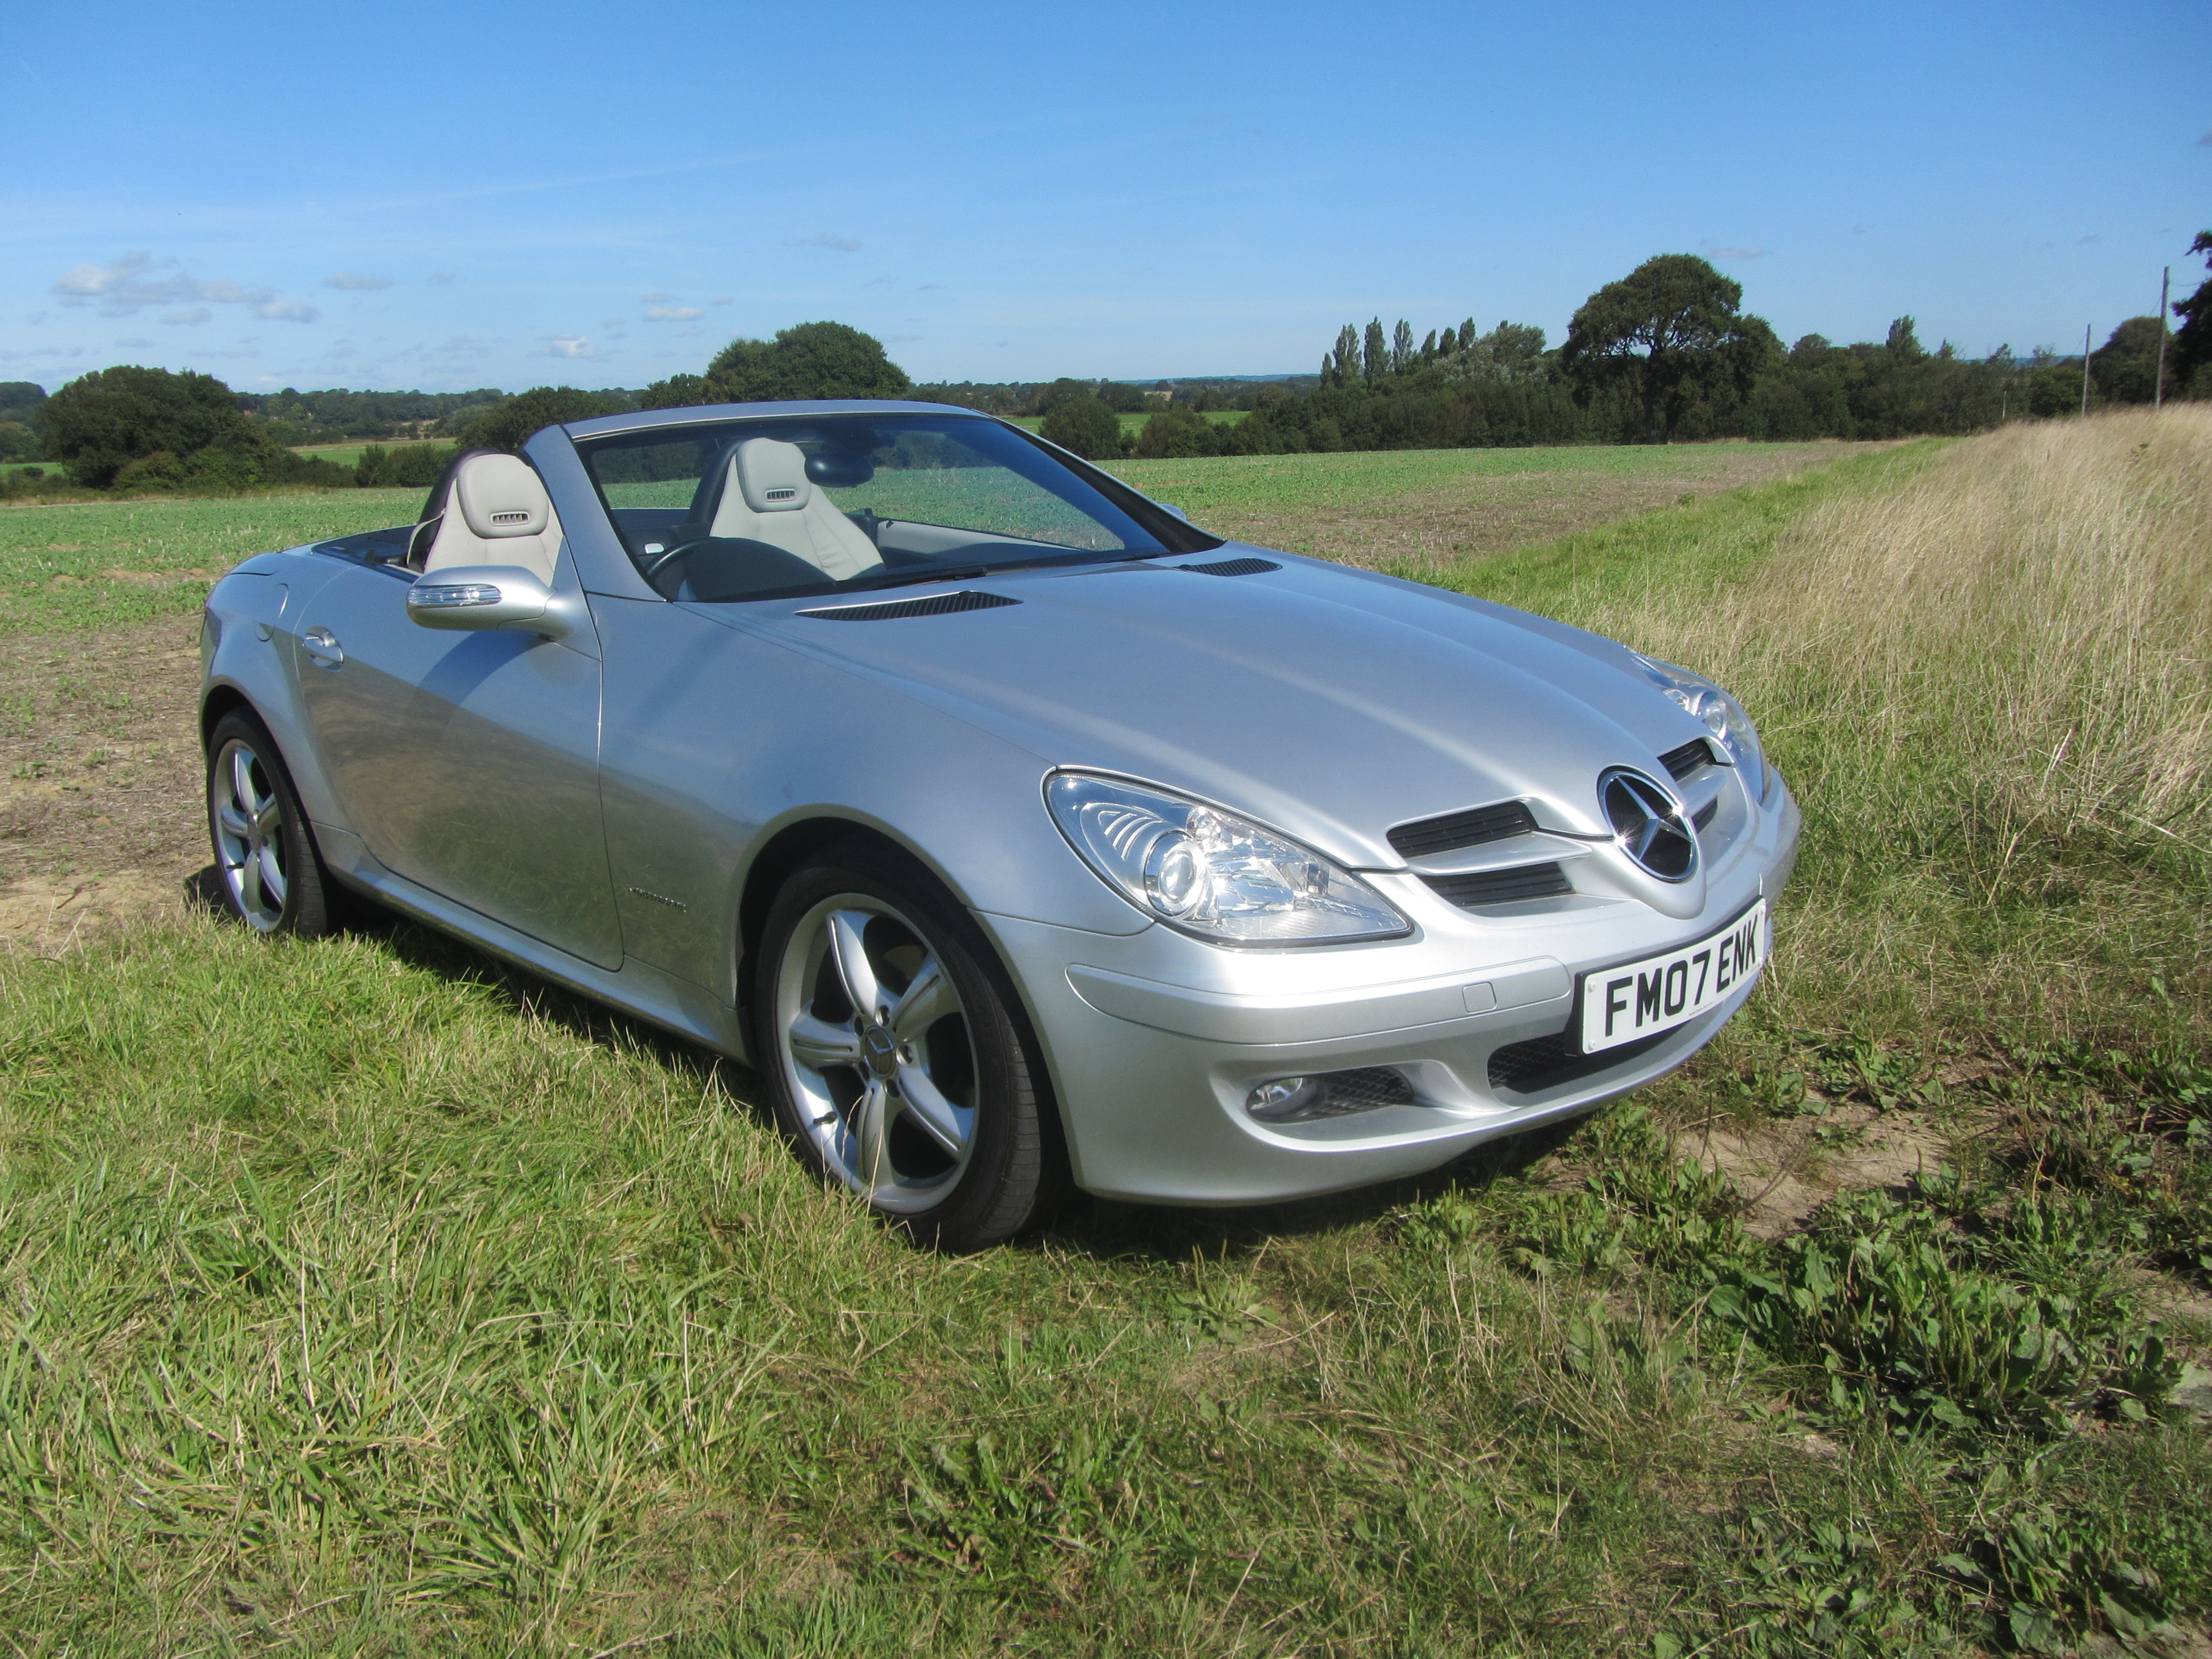 Mercedes SLK 200 Kompressor for sale